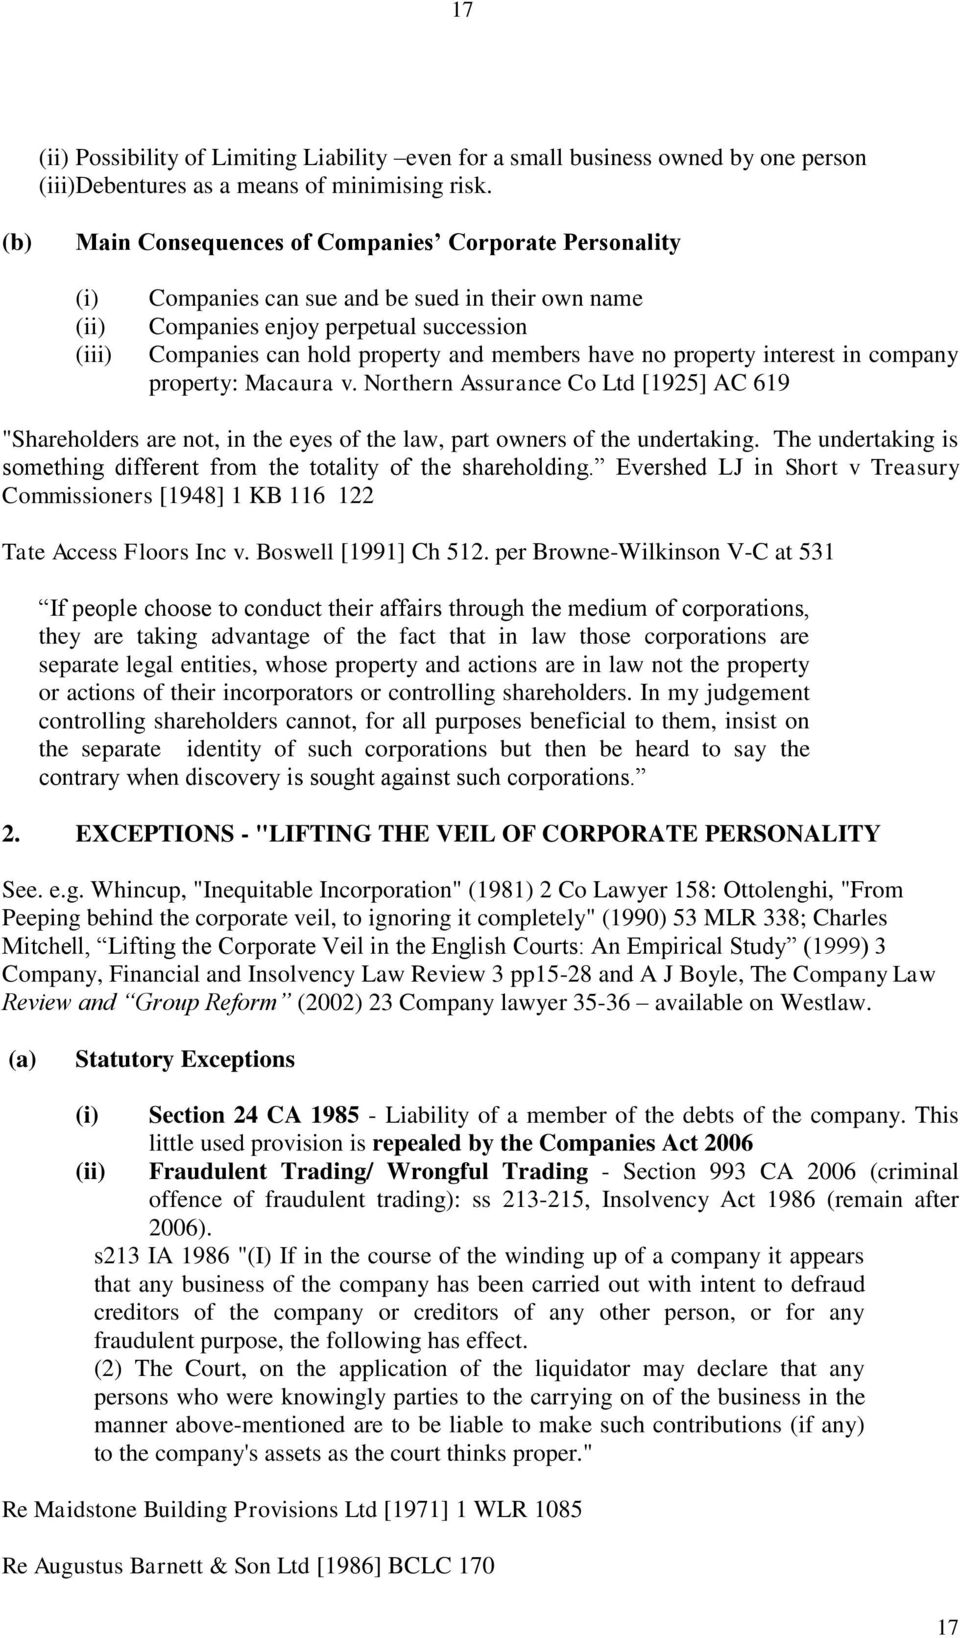 "have no property interest in company property: Macaura v. Northern Assurance Co Ltd [1925] AC 619 ""Shareholders are not, in the eyes of the law, part owners of the undertaking."